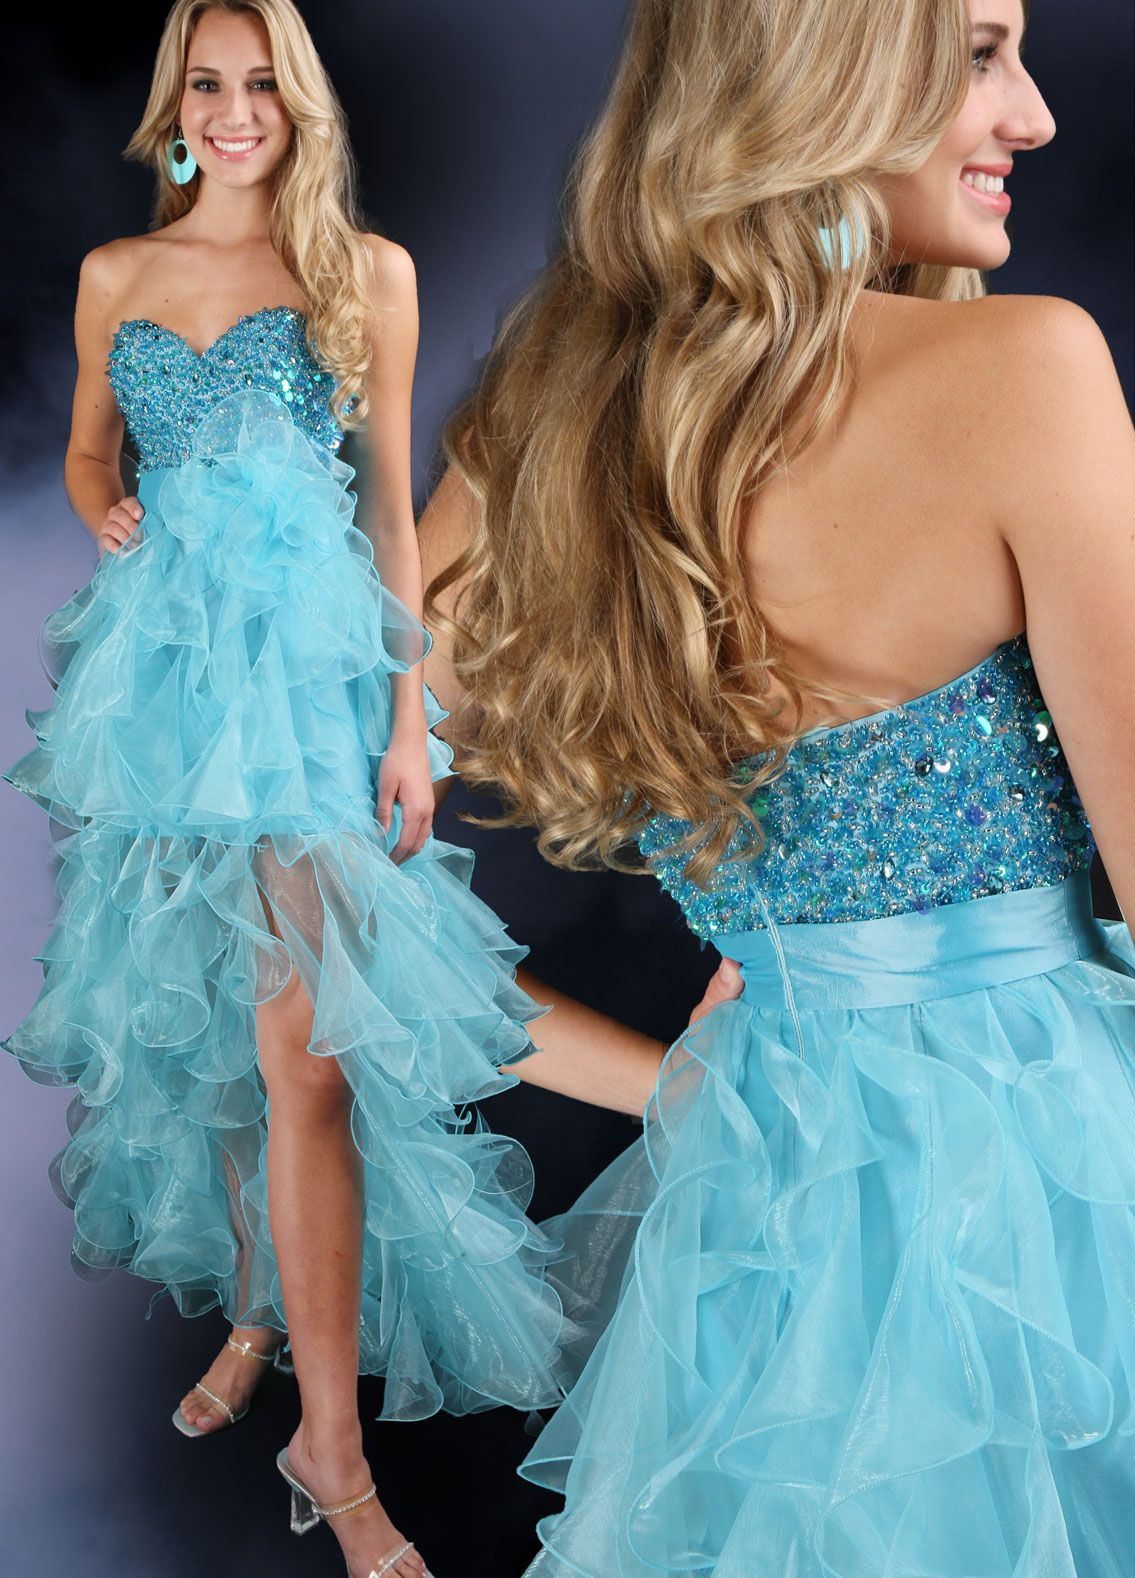 F71046 Strapless prom dresses with high low skirt. | high low ...